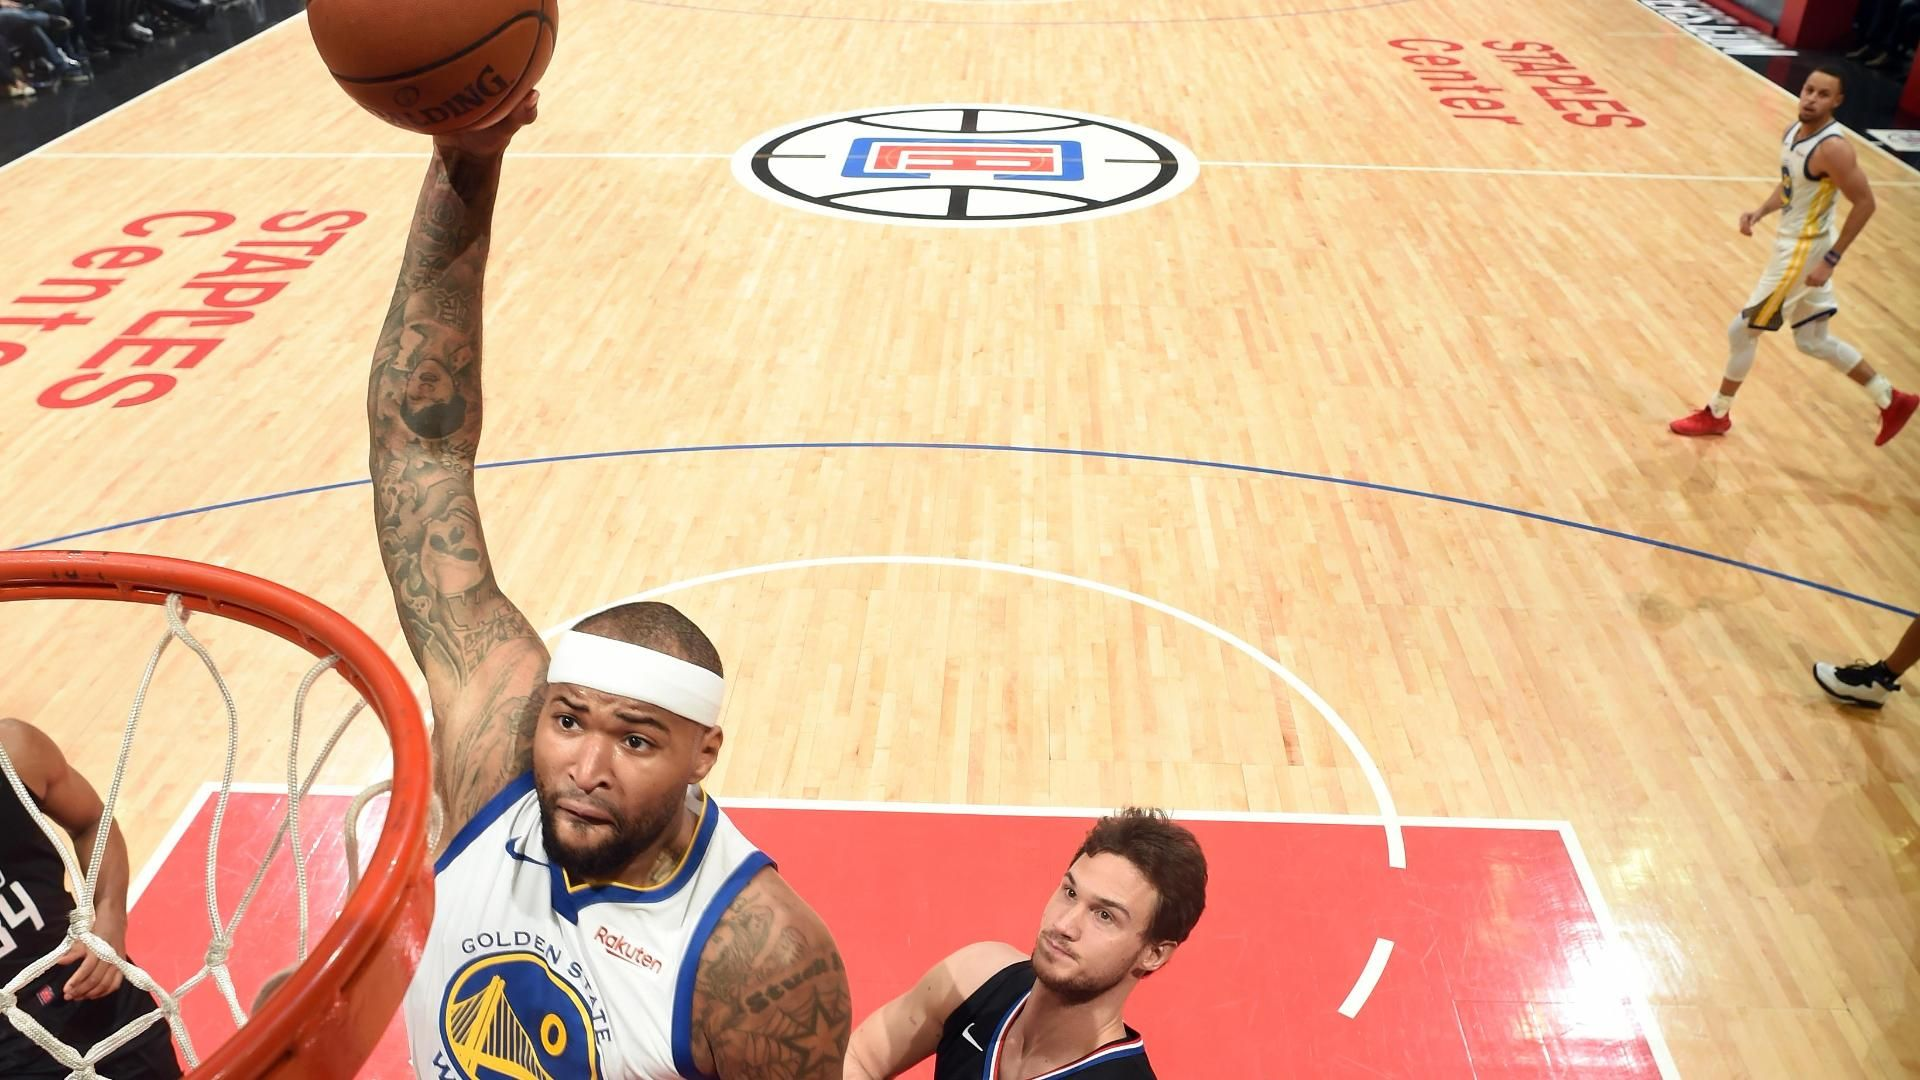 Cousins hammers dunk for 1st points with Warriors